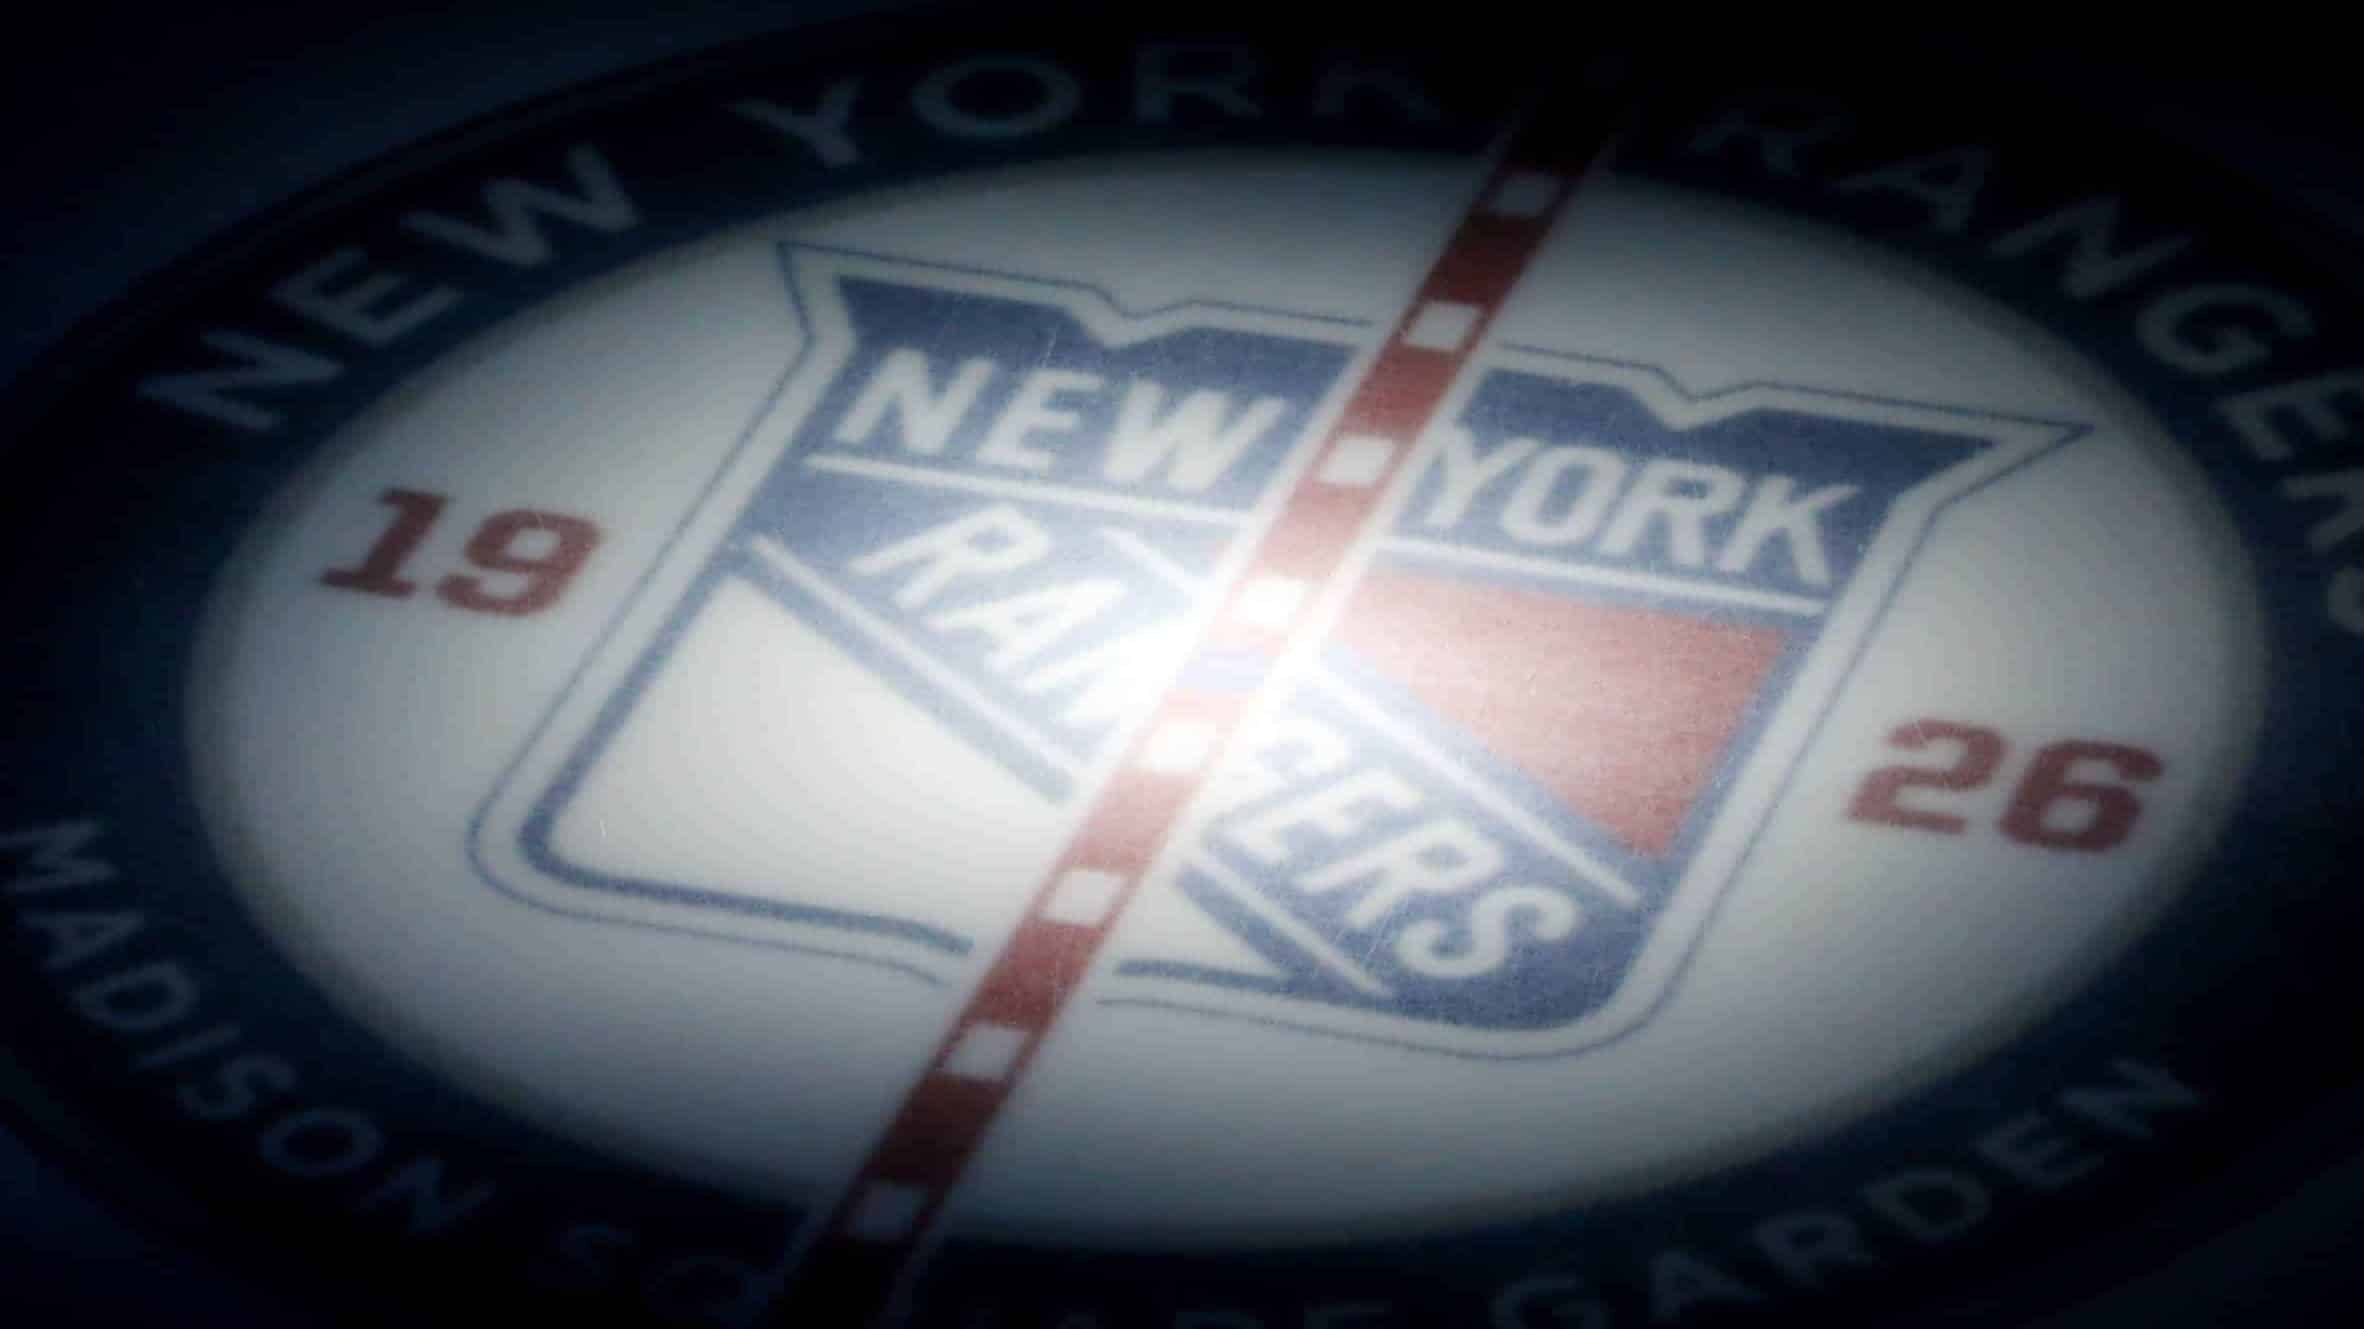 New York Rangers-Draft or Free Agency more important?